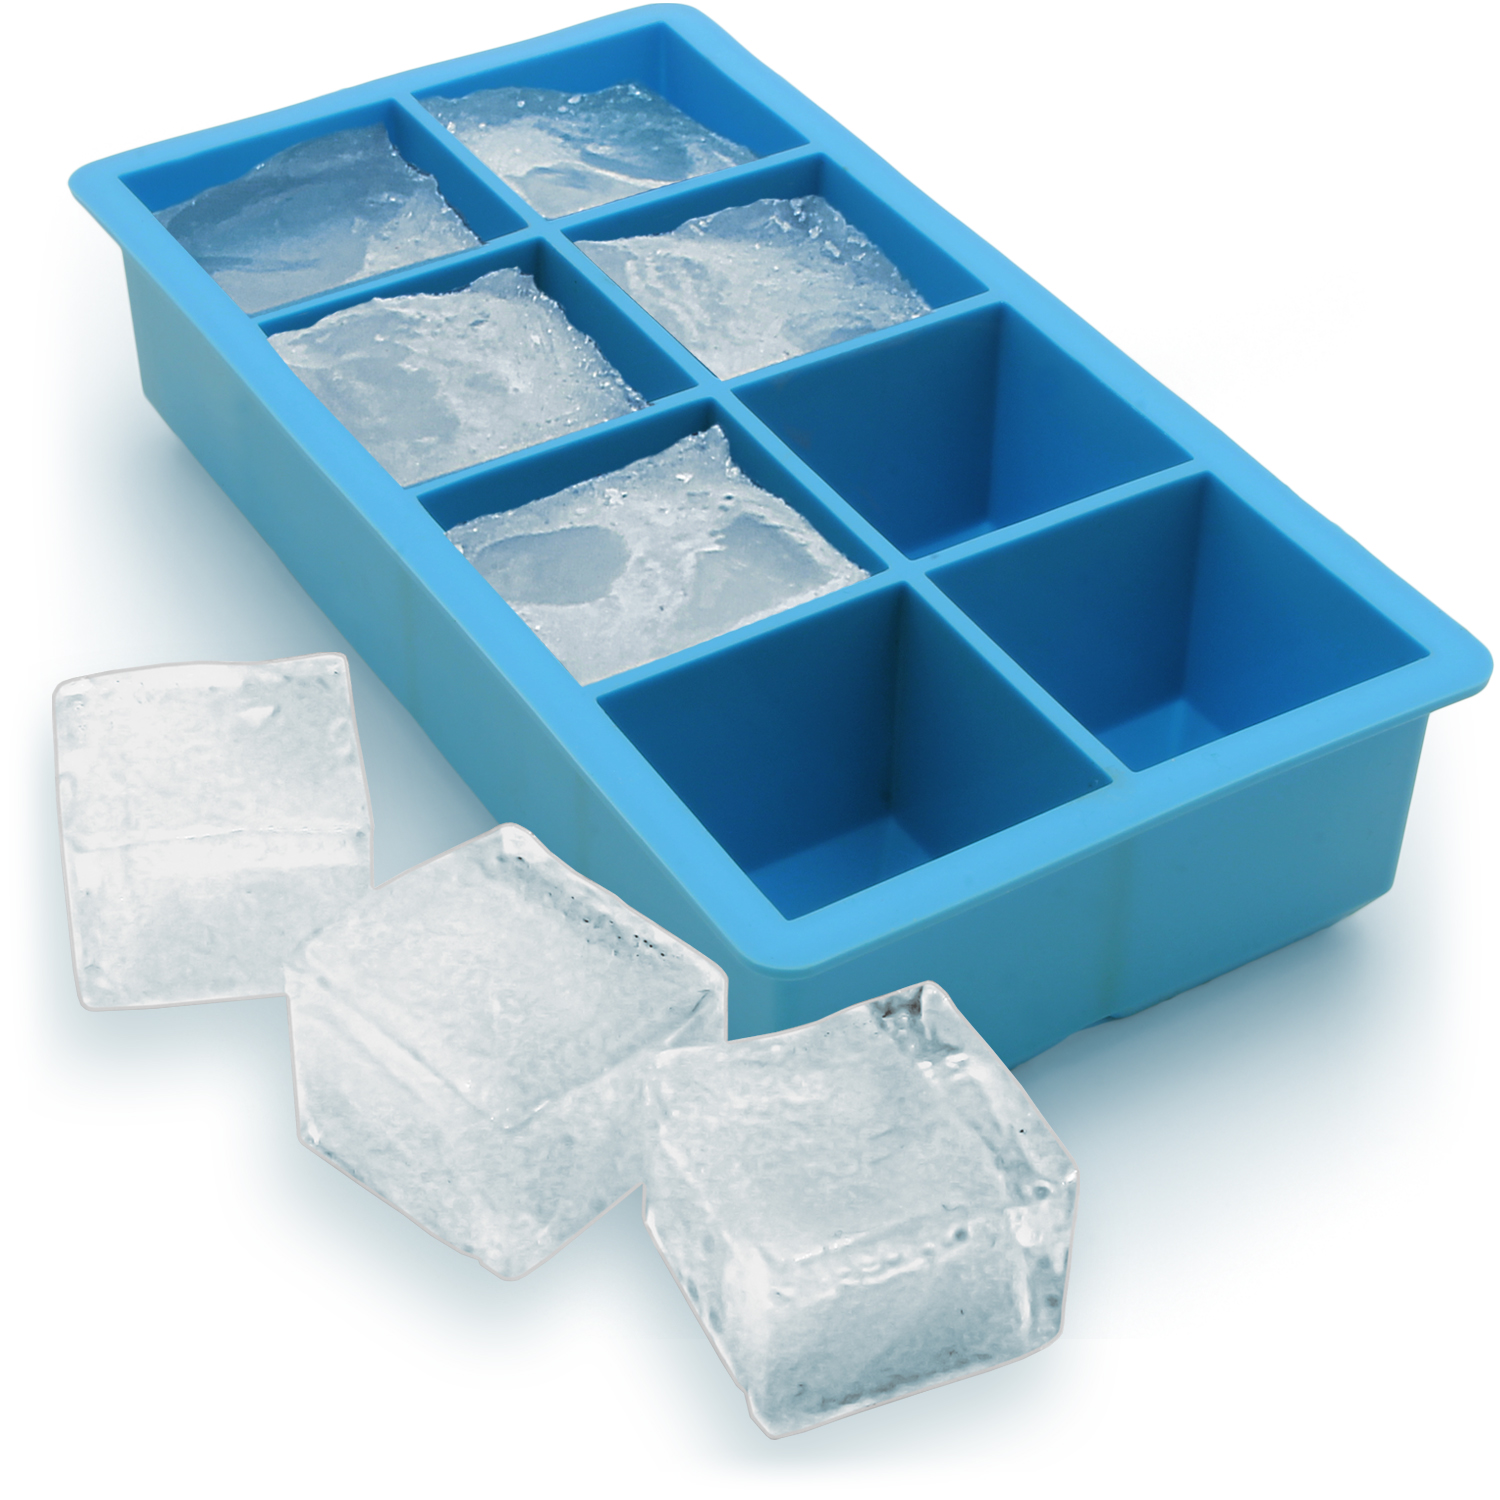 iGadgitz Home Silicone Ice Cube Tray 8 Extra Large Square Food Grade Jumbo Ice Cube Moulds